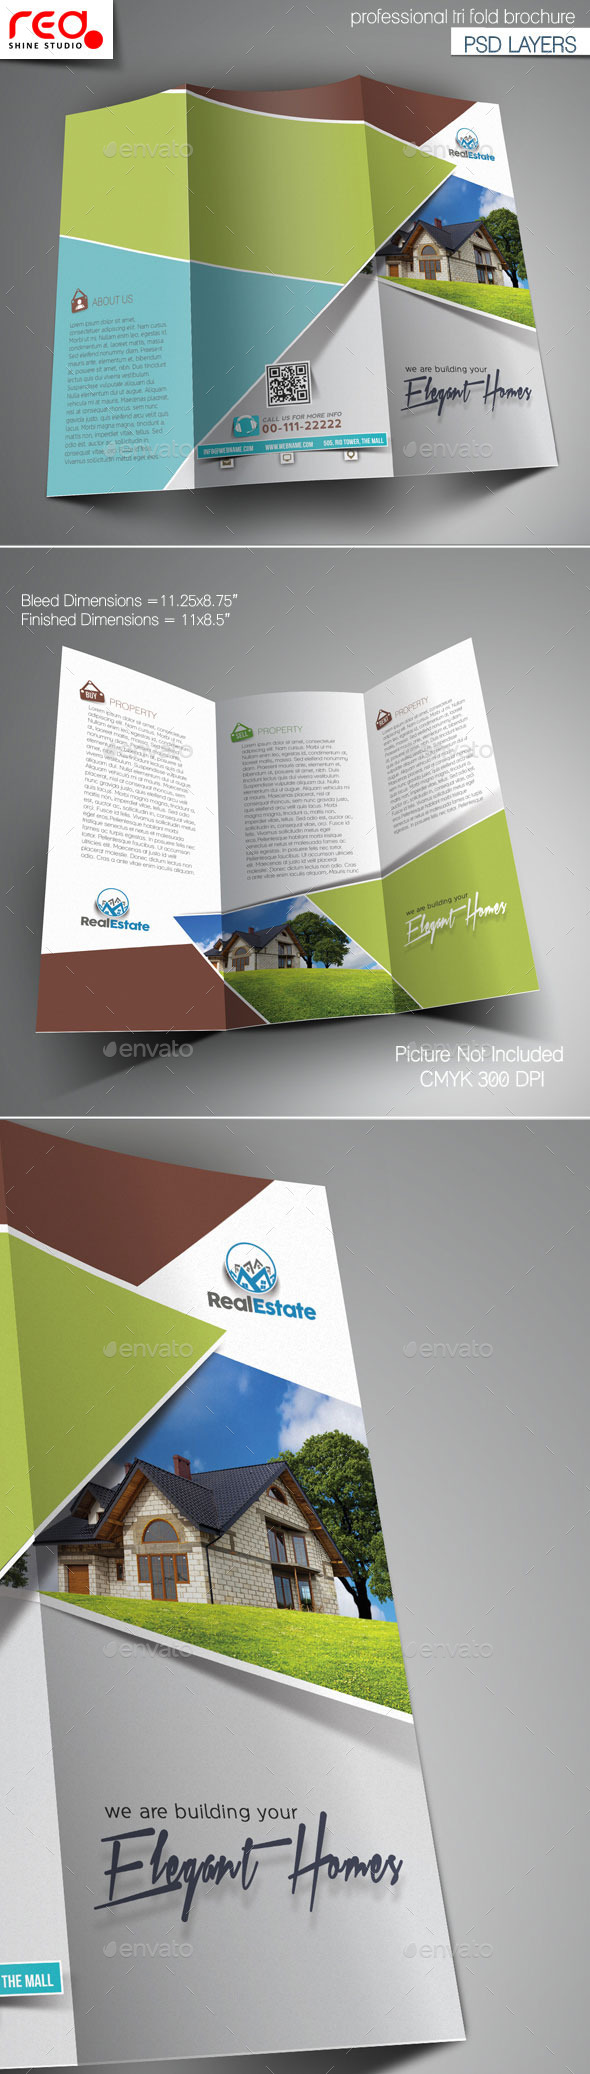 Real Estate Multipurpose Trifold Brochure Template By Redshinestudio - Real estate tri fold brochure template